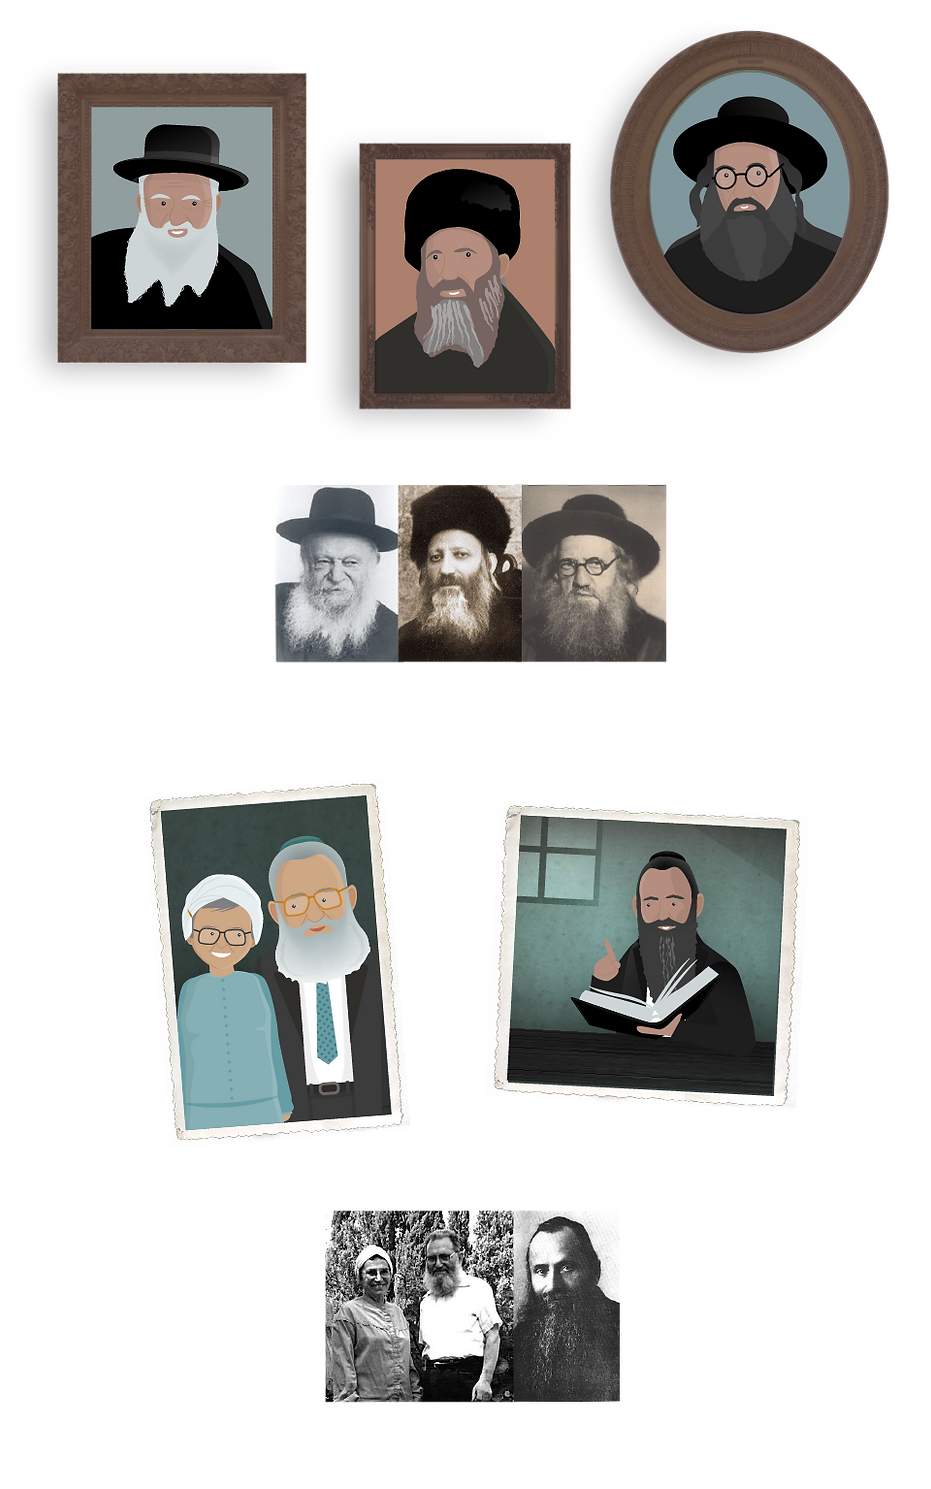 Portraits of rabbis